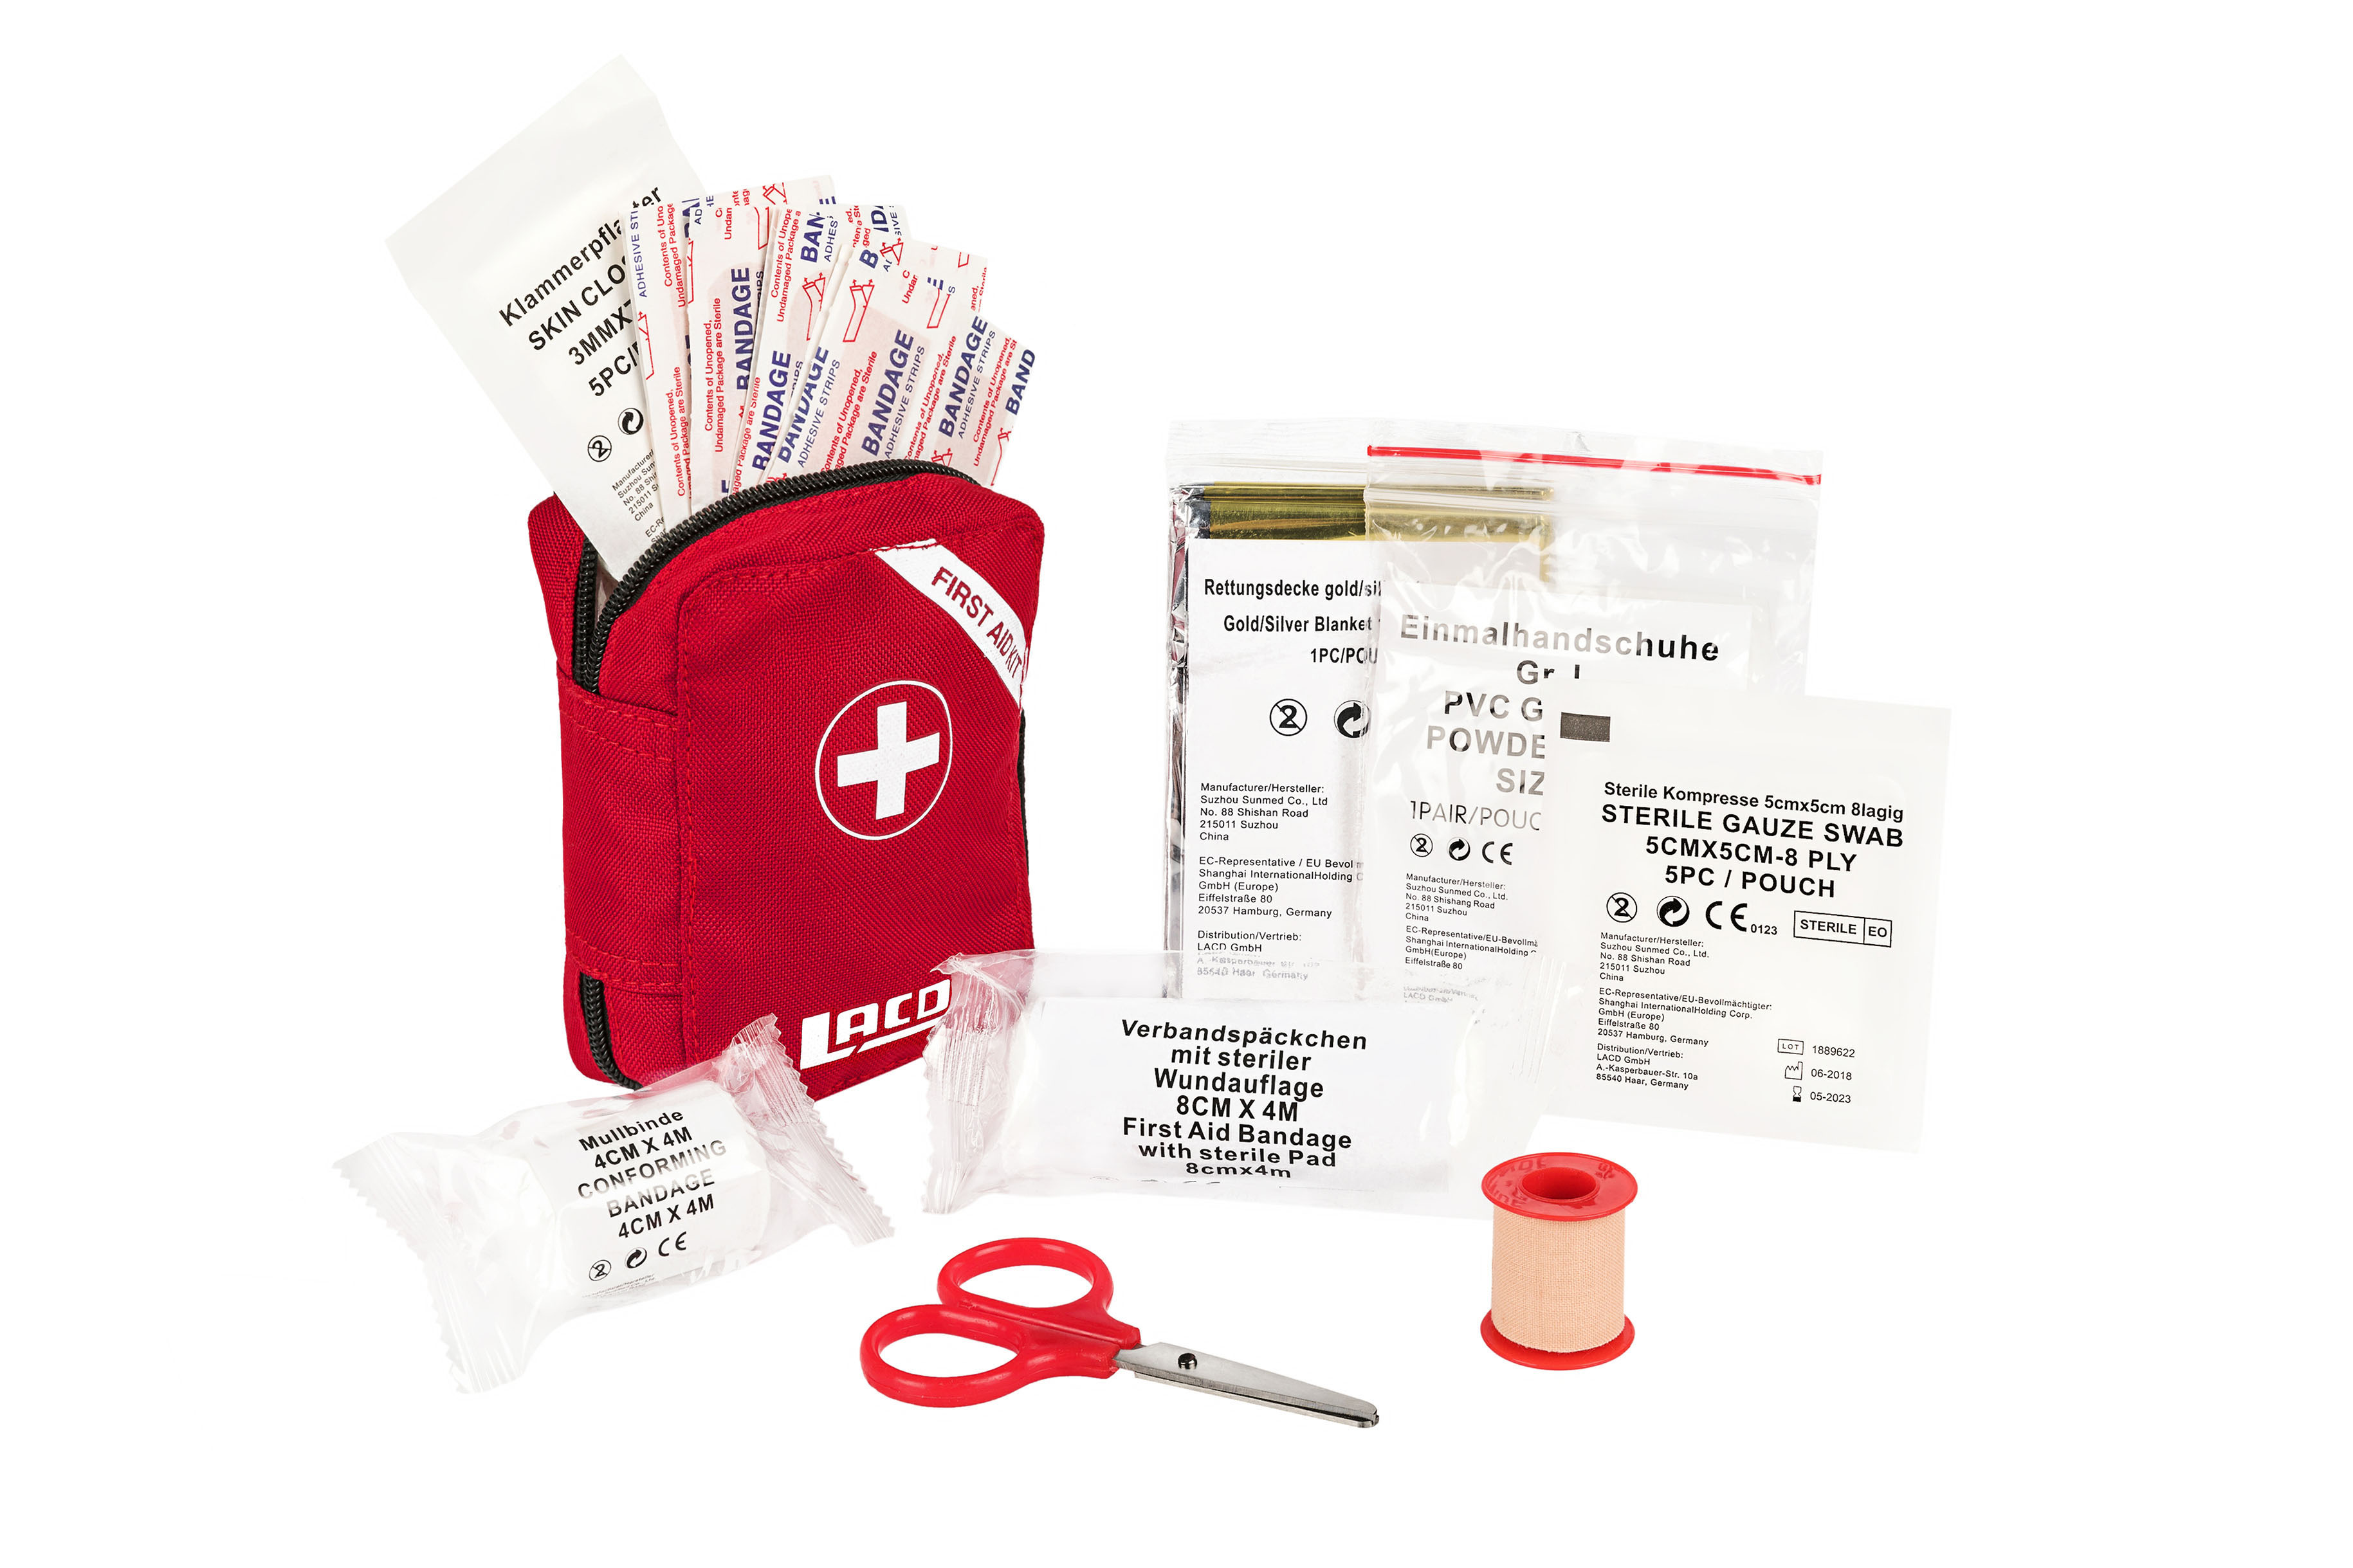 Klettergurt Lacd : Lacd first aid kit